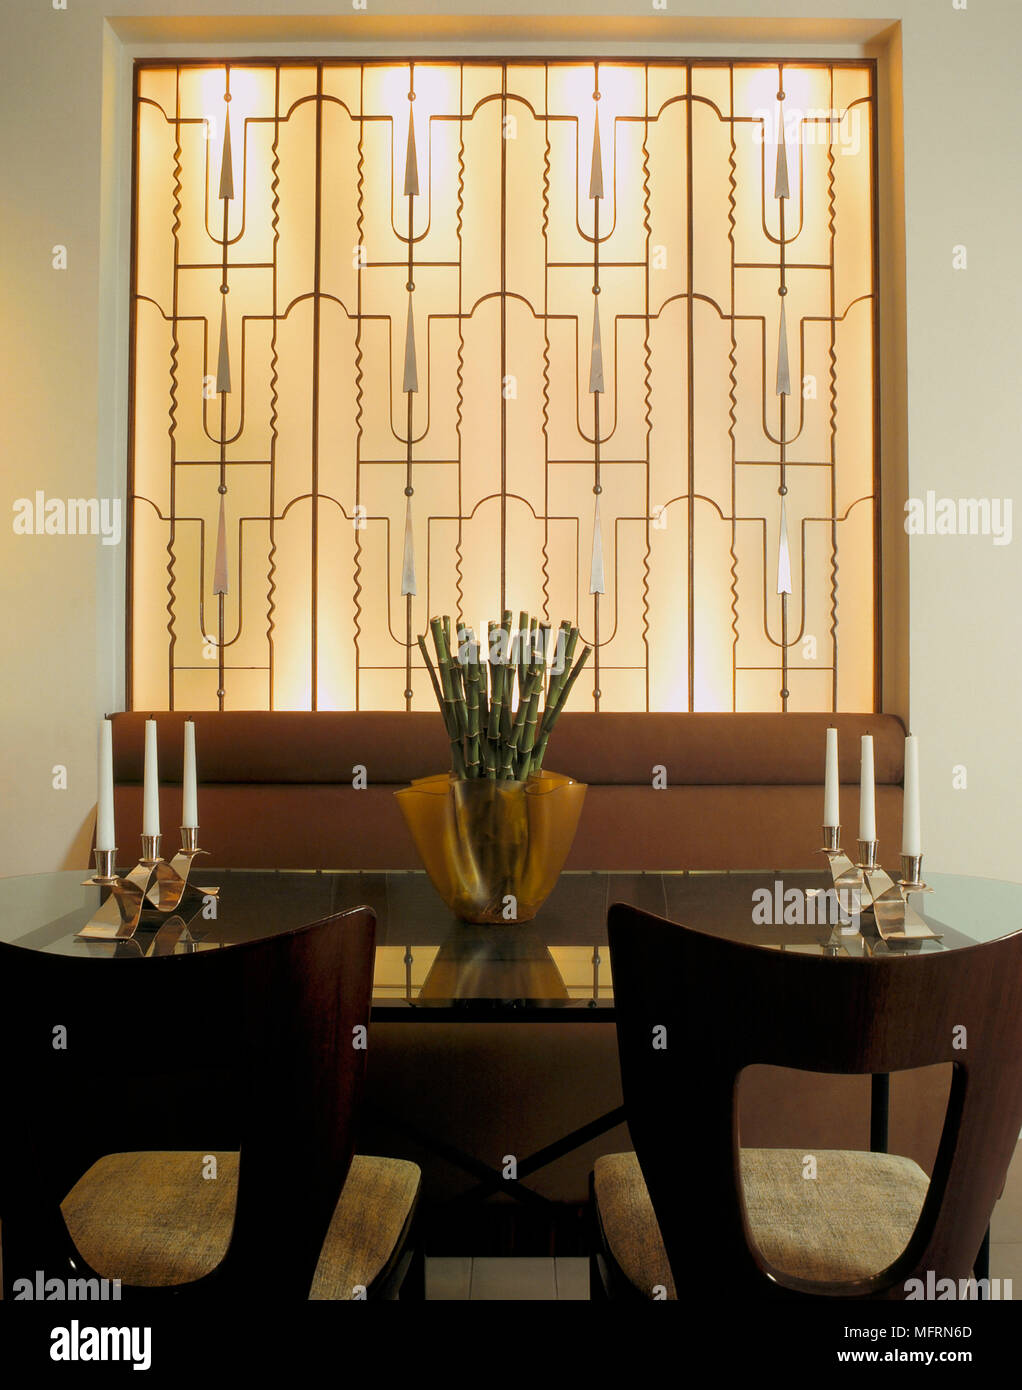 A detail of a modern dining room with glass table chairs banquette ...